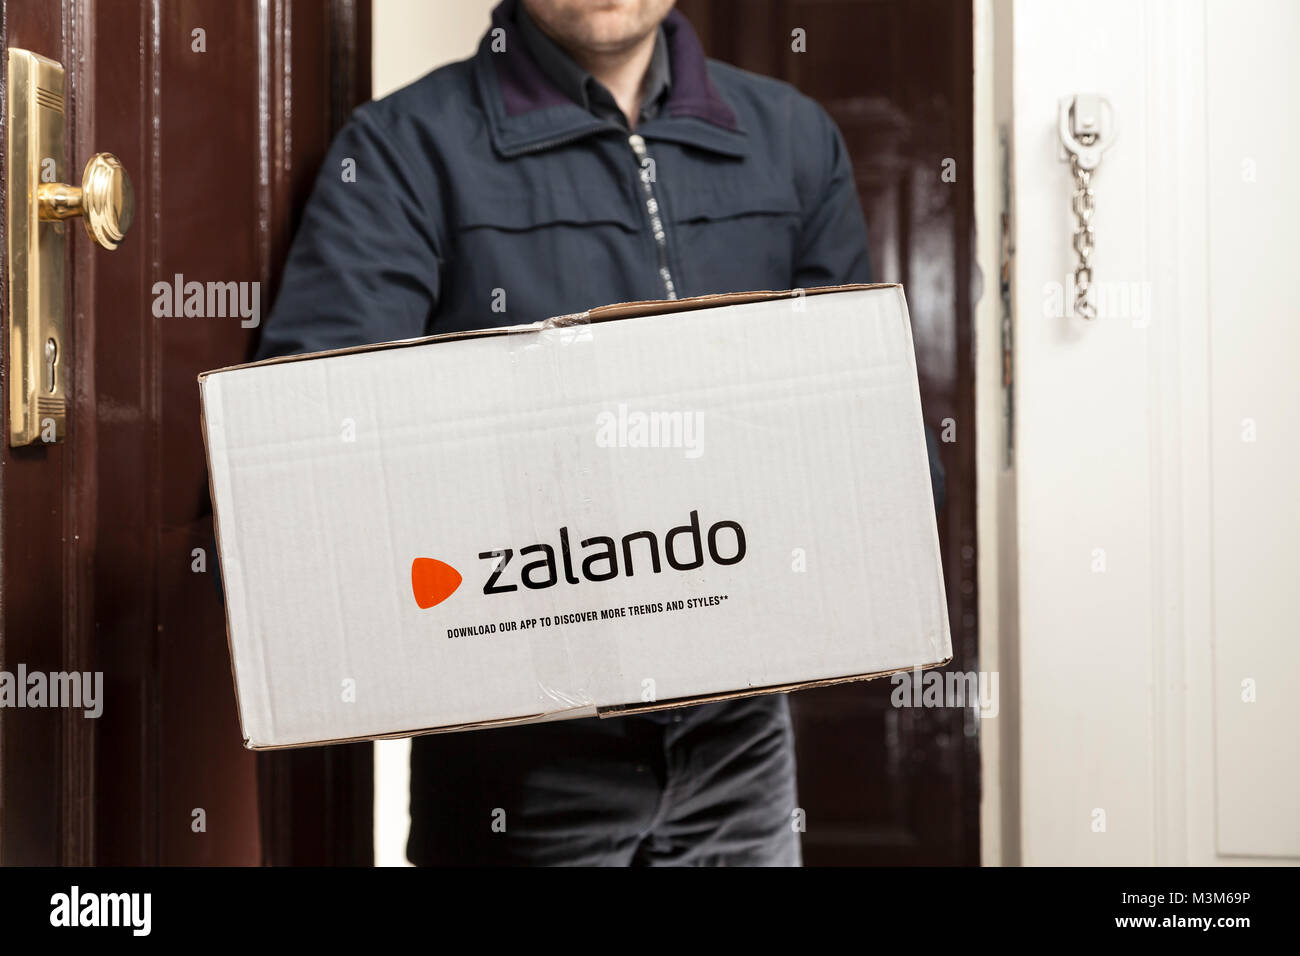 Zalando Online Bestellen Parcel Of Zalando Online Shop In Germany Stock Photo 174391666